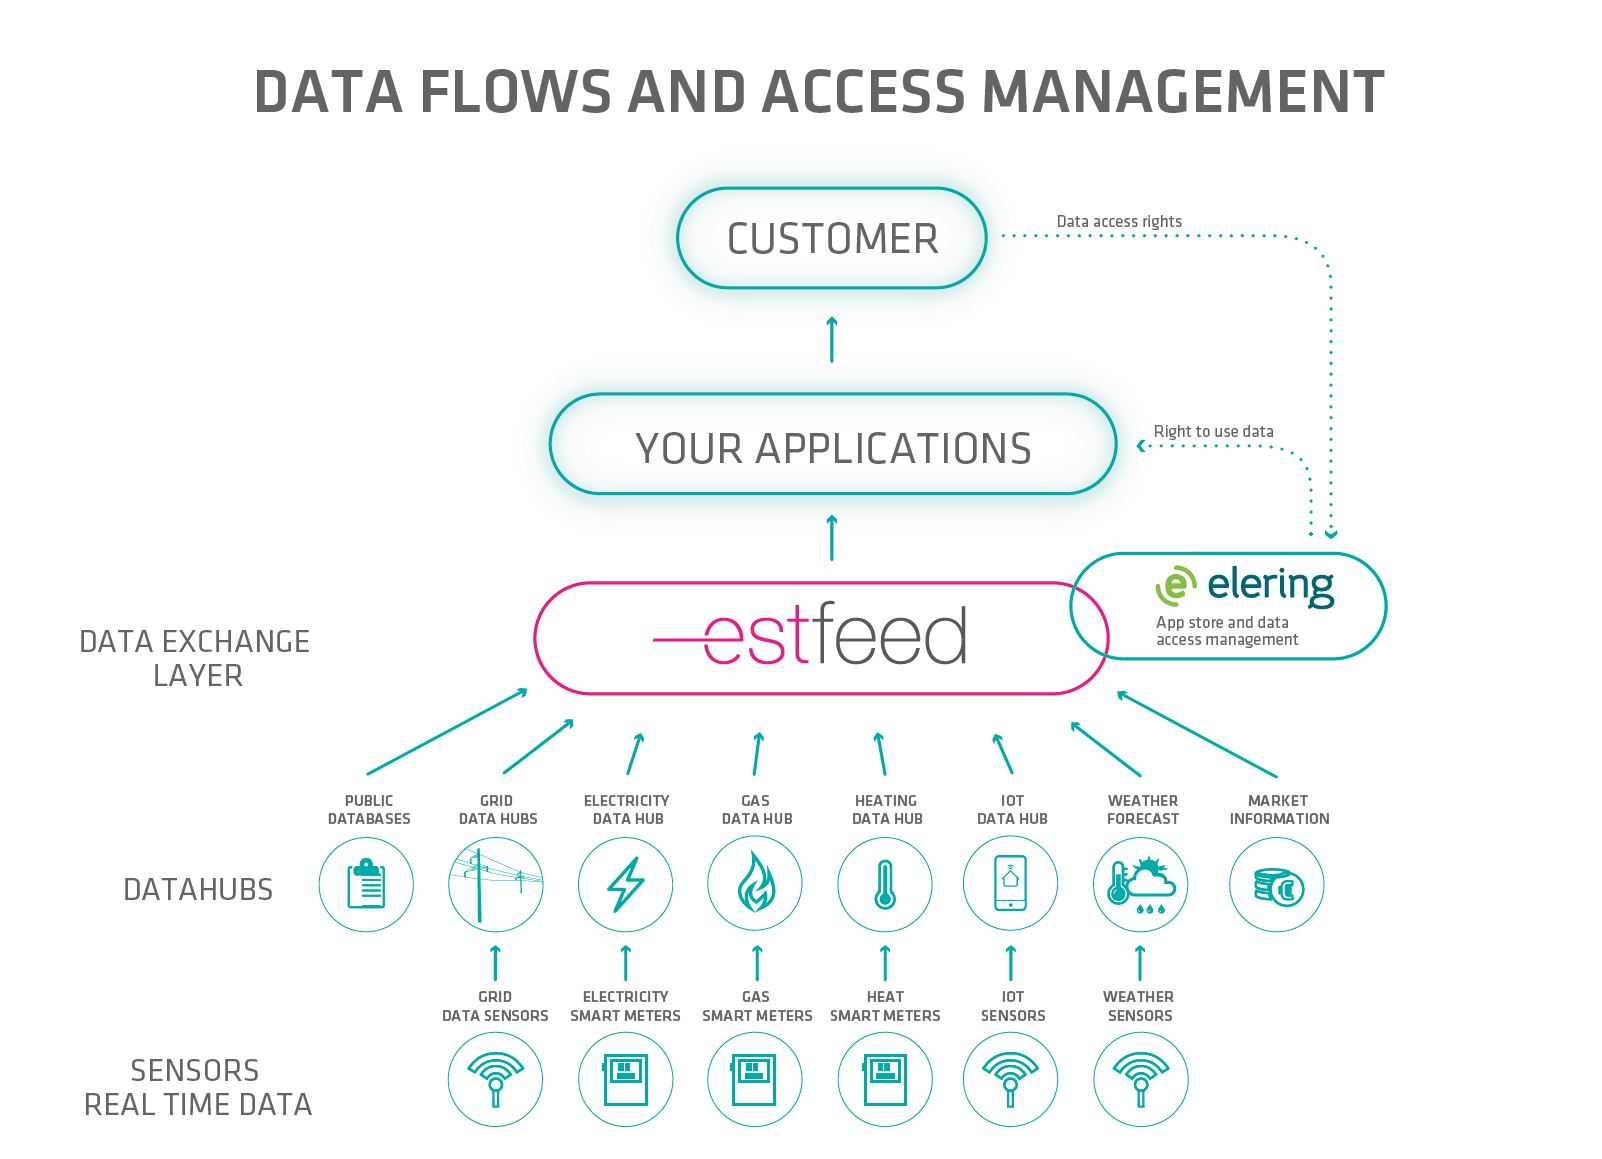 Access to electricity and gas smart meter data in Estonia